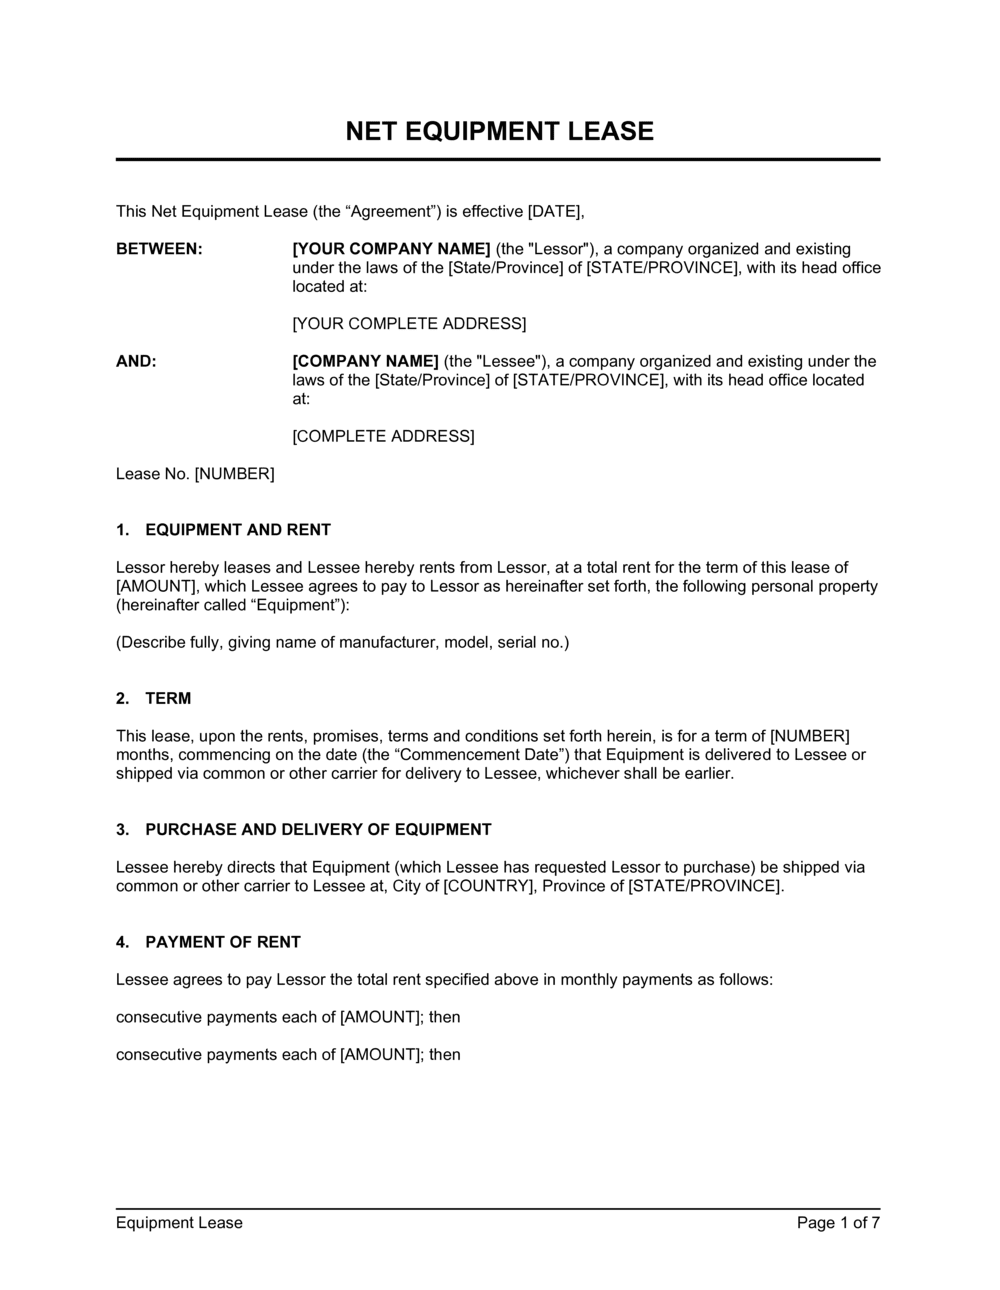 Business-in-a-Box's Net Equipment Lease 2 Template